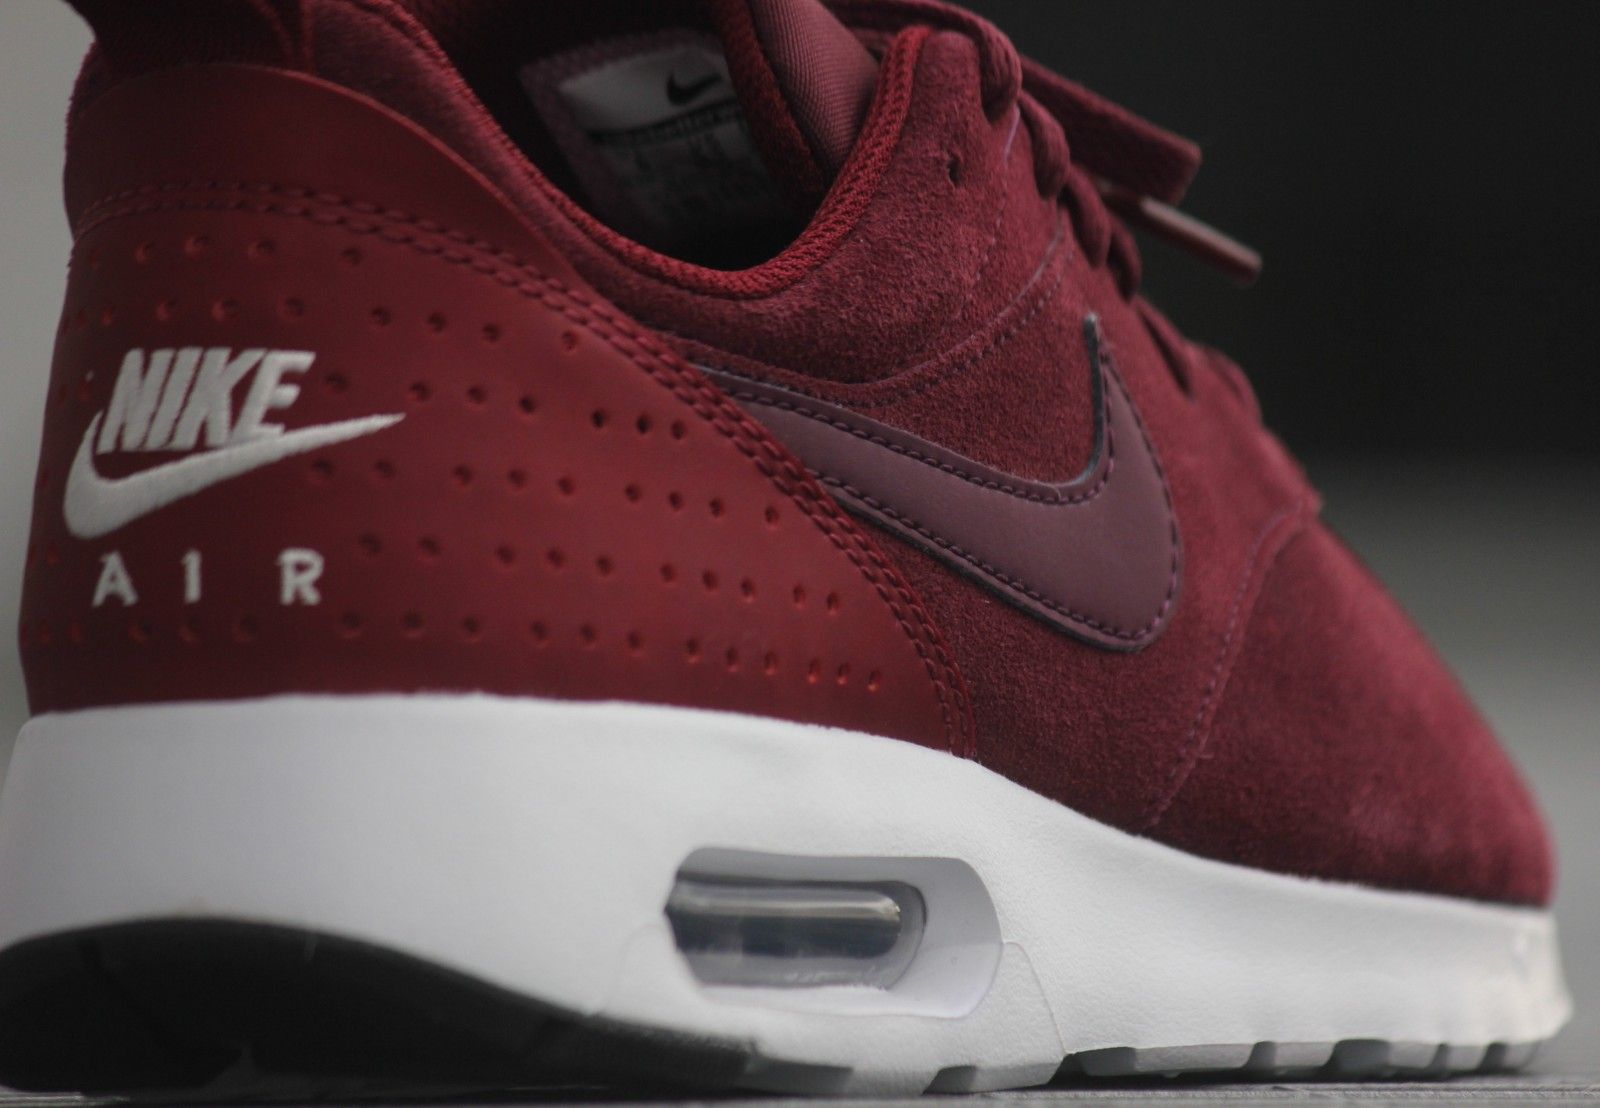 Details about Nike Air Max Tavas LTR Night MaroonNight Maroon Team Red Sail US10 DEADSTOCK